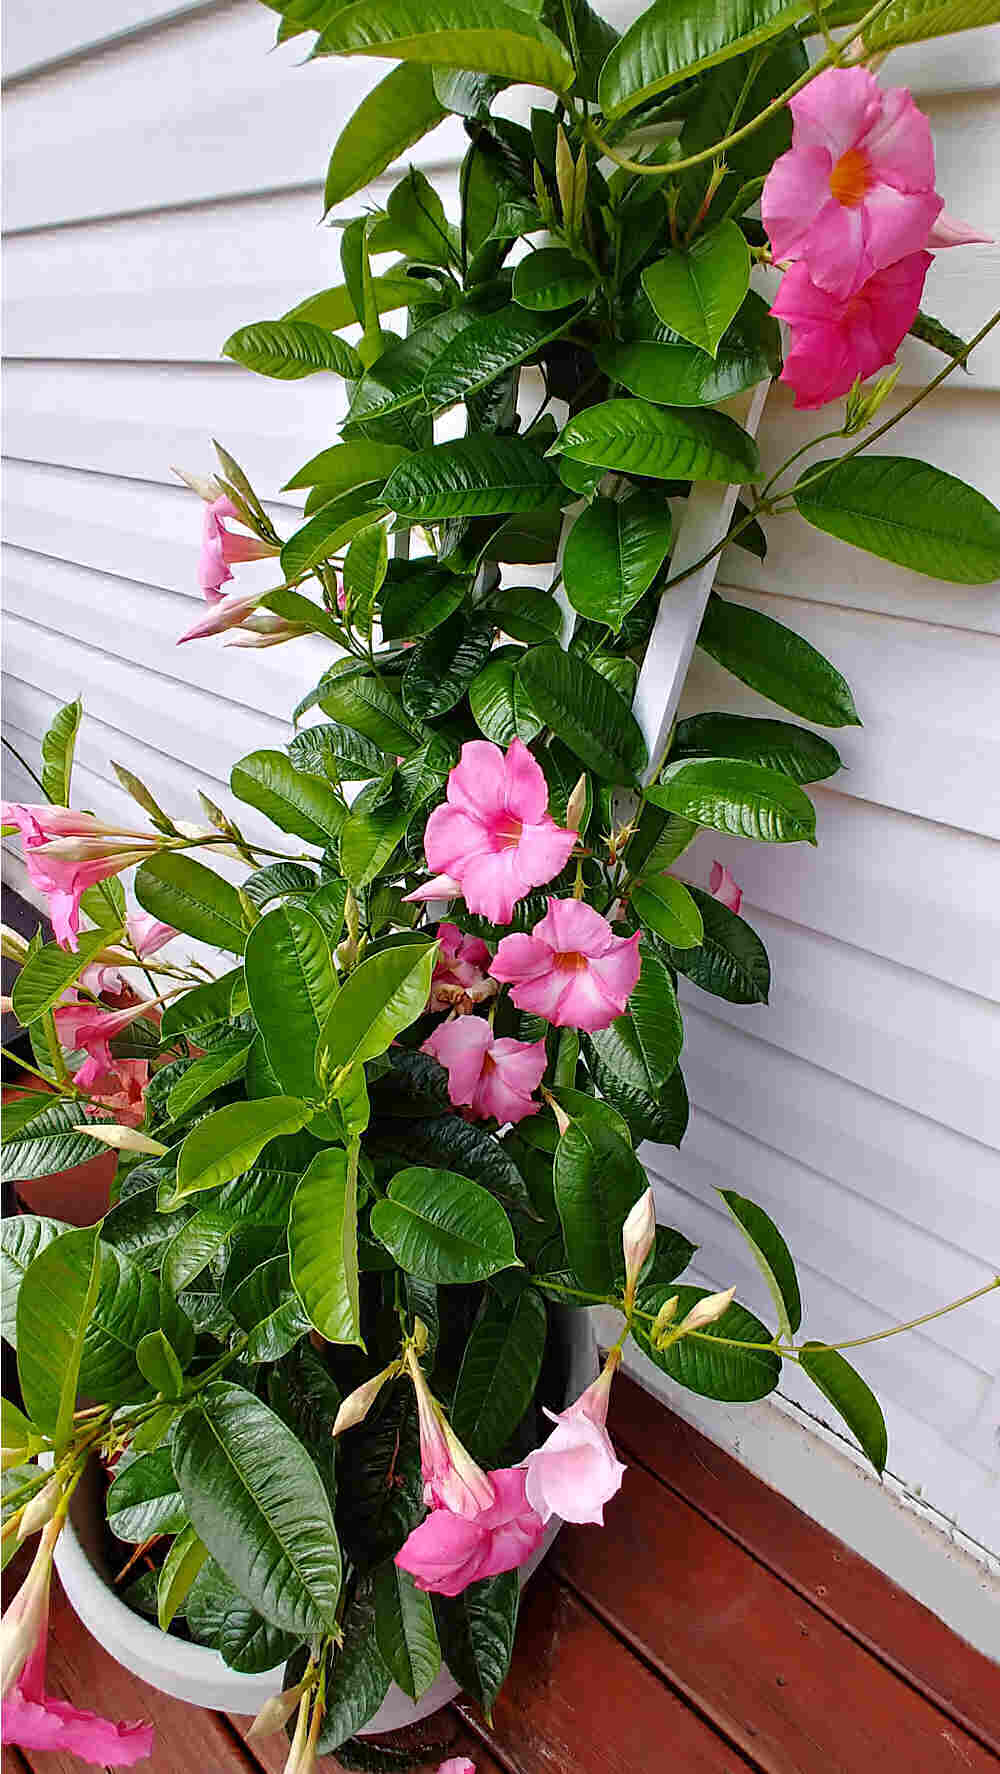 Mandevilla plant in a pot with trellis behind it.